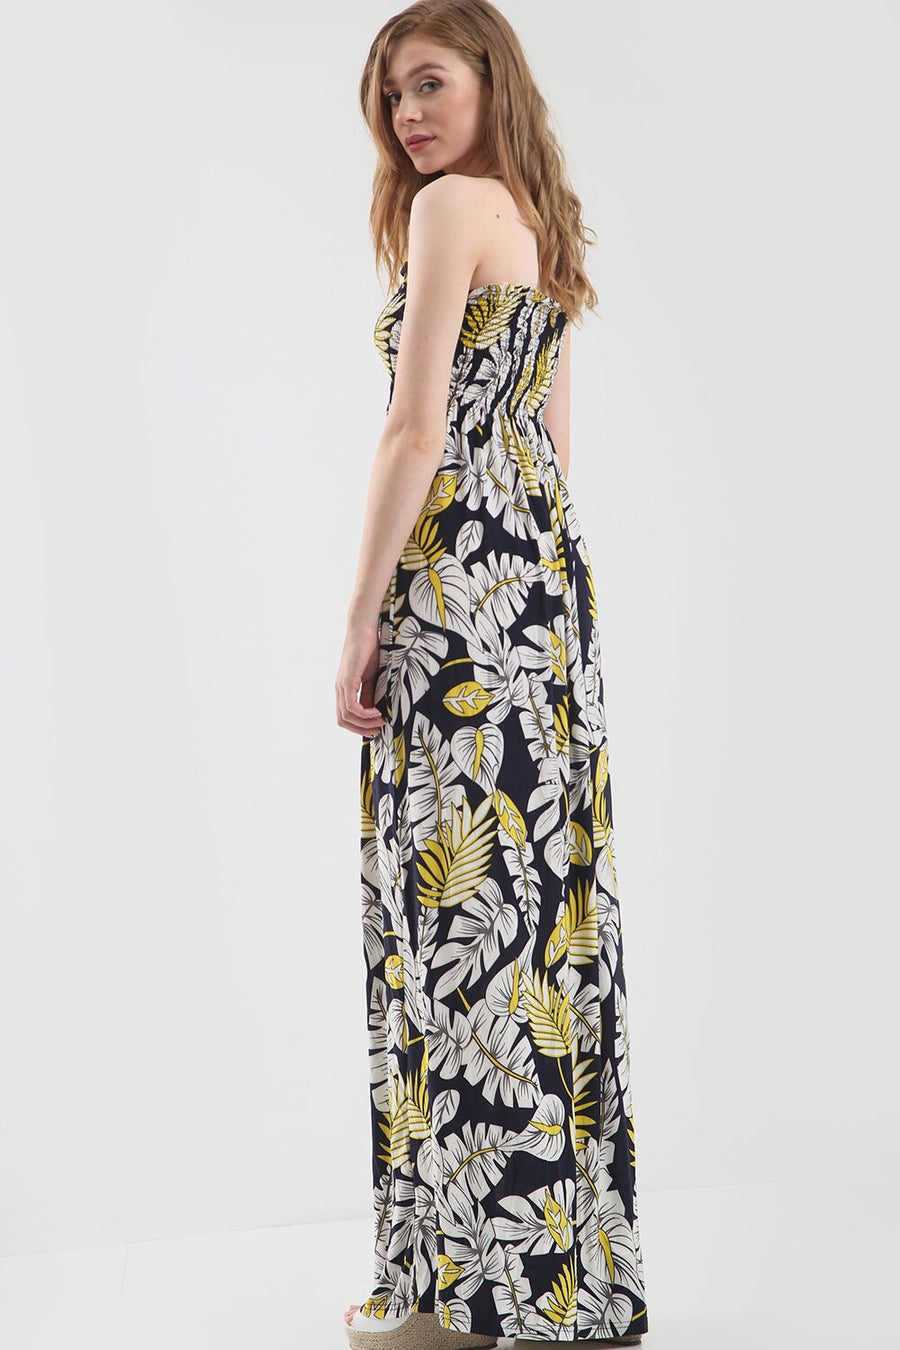 Navy Strapless Maxi Dress in Yellow Tropical Print - bejealous-com